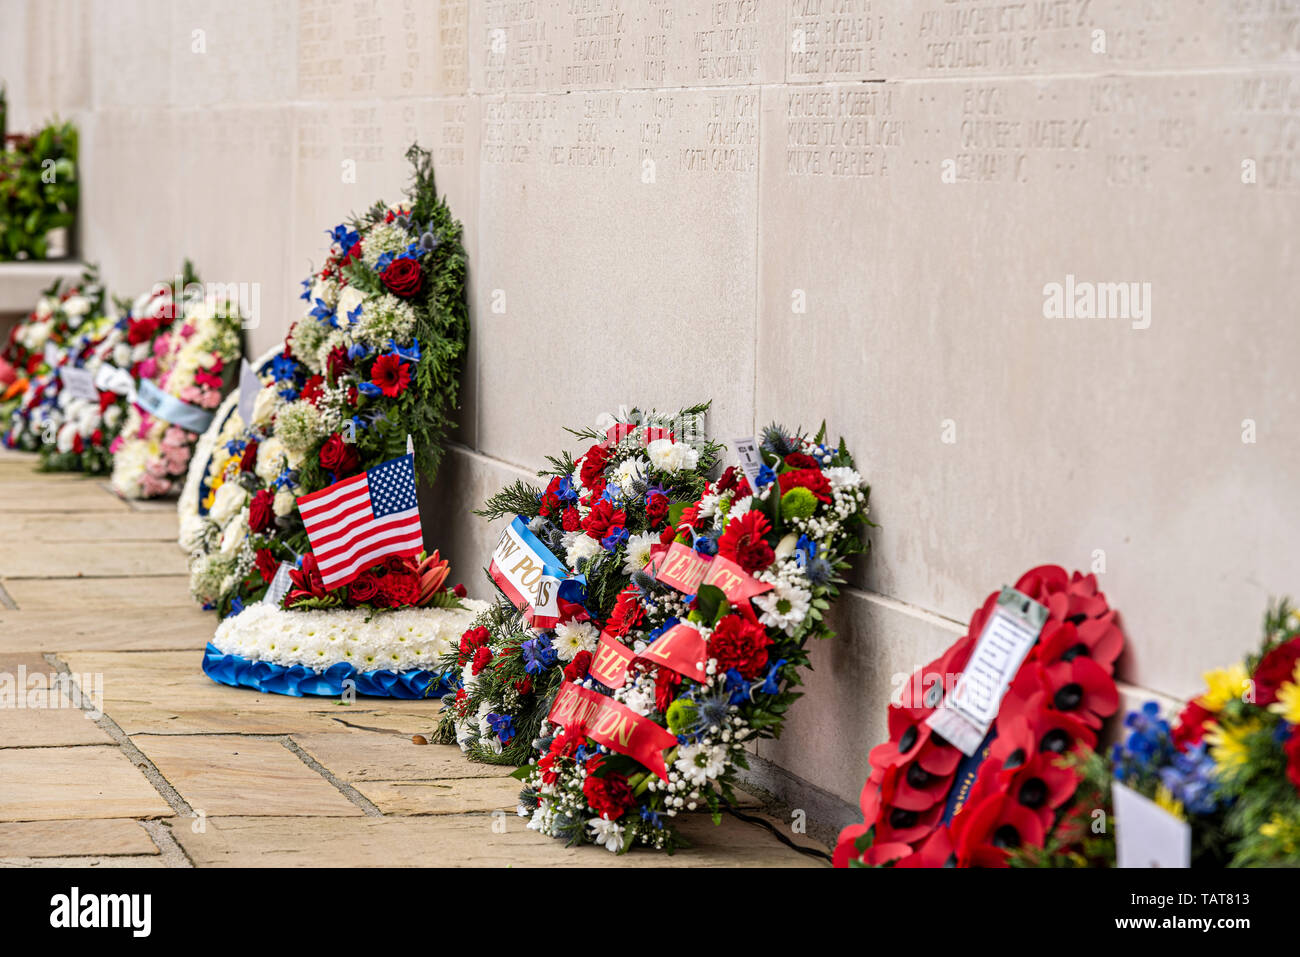 Wreaths against the Memorial Wall of the Missing on US Memorial Day remembrance event at Cambridge American Cemetery and Memorial, Cambridgeshire, UK. - Stock Image